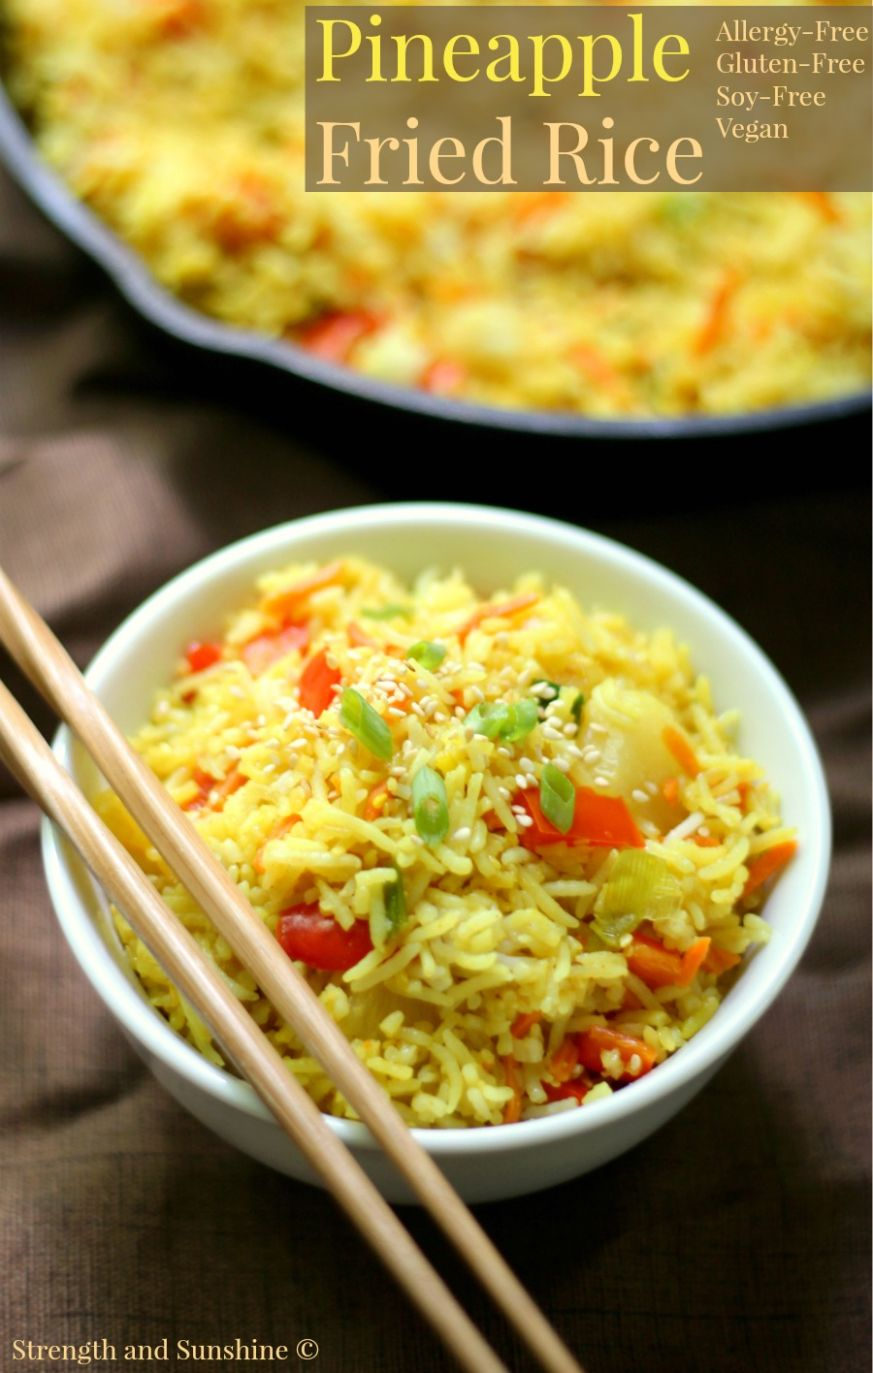 Gluten-Free Pineapple Fried Rice (Allergy-Free, Vegan) - Rice Recipes Gluten Free